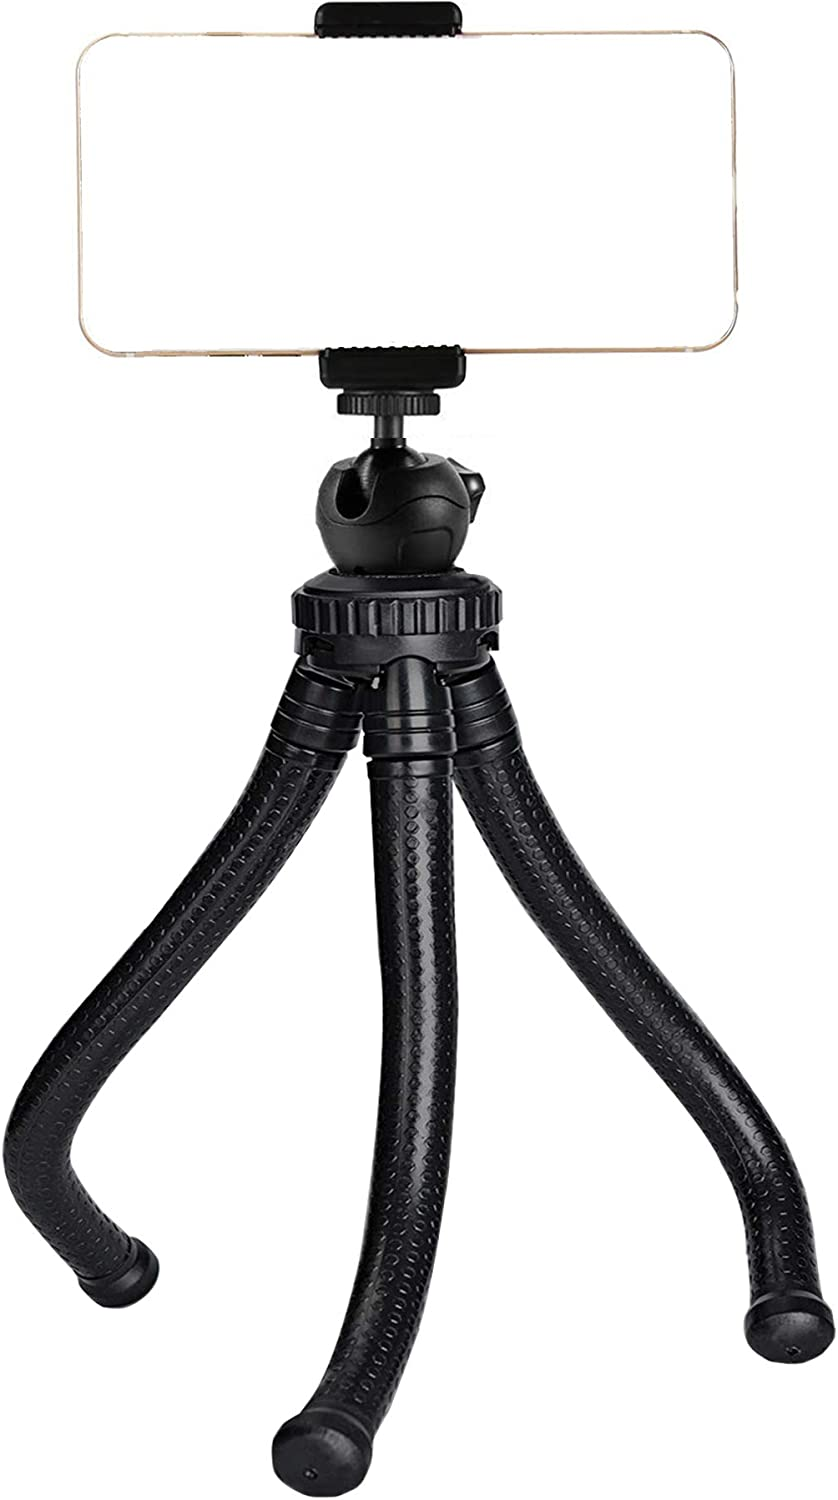 Ailun Phone Tripod Mount Stand Camera Holder for iPhone 11/11 Pro/11 Pro Max/Xs XR Xs Max 8 7 Plus 6s Digtal Camera Galaxy S10 S9 S8 Plus S7 S7 Edge Note 10,Camera and More Black